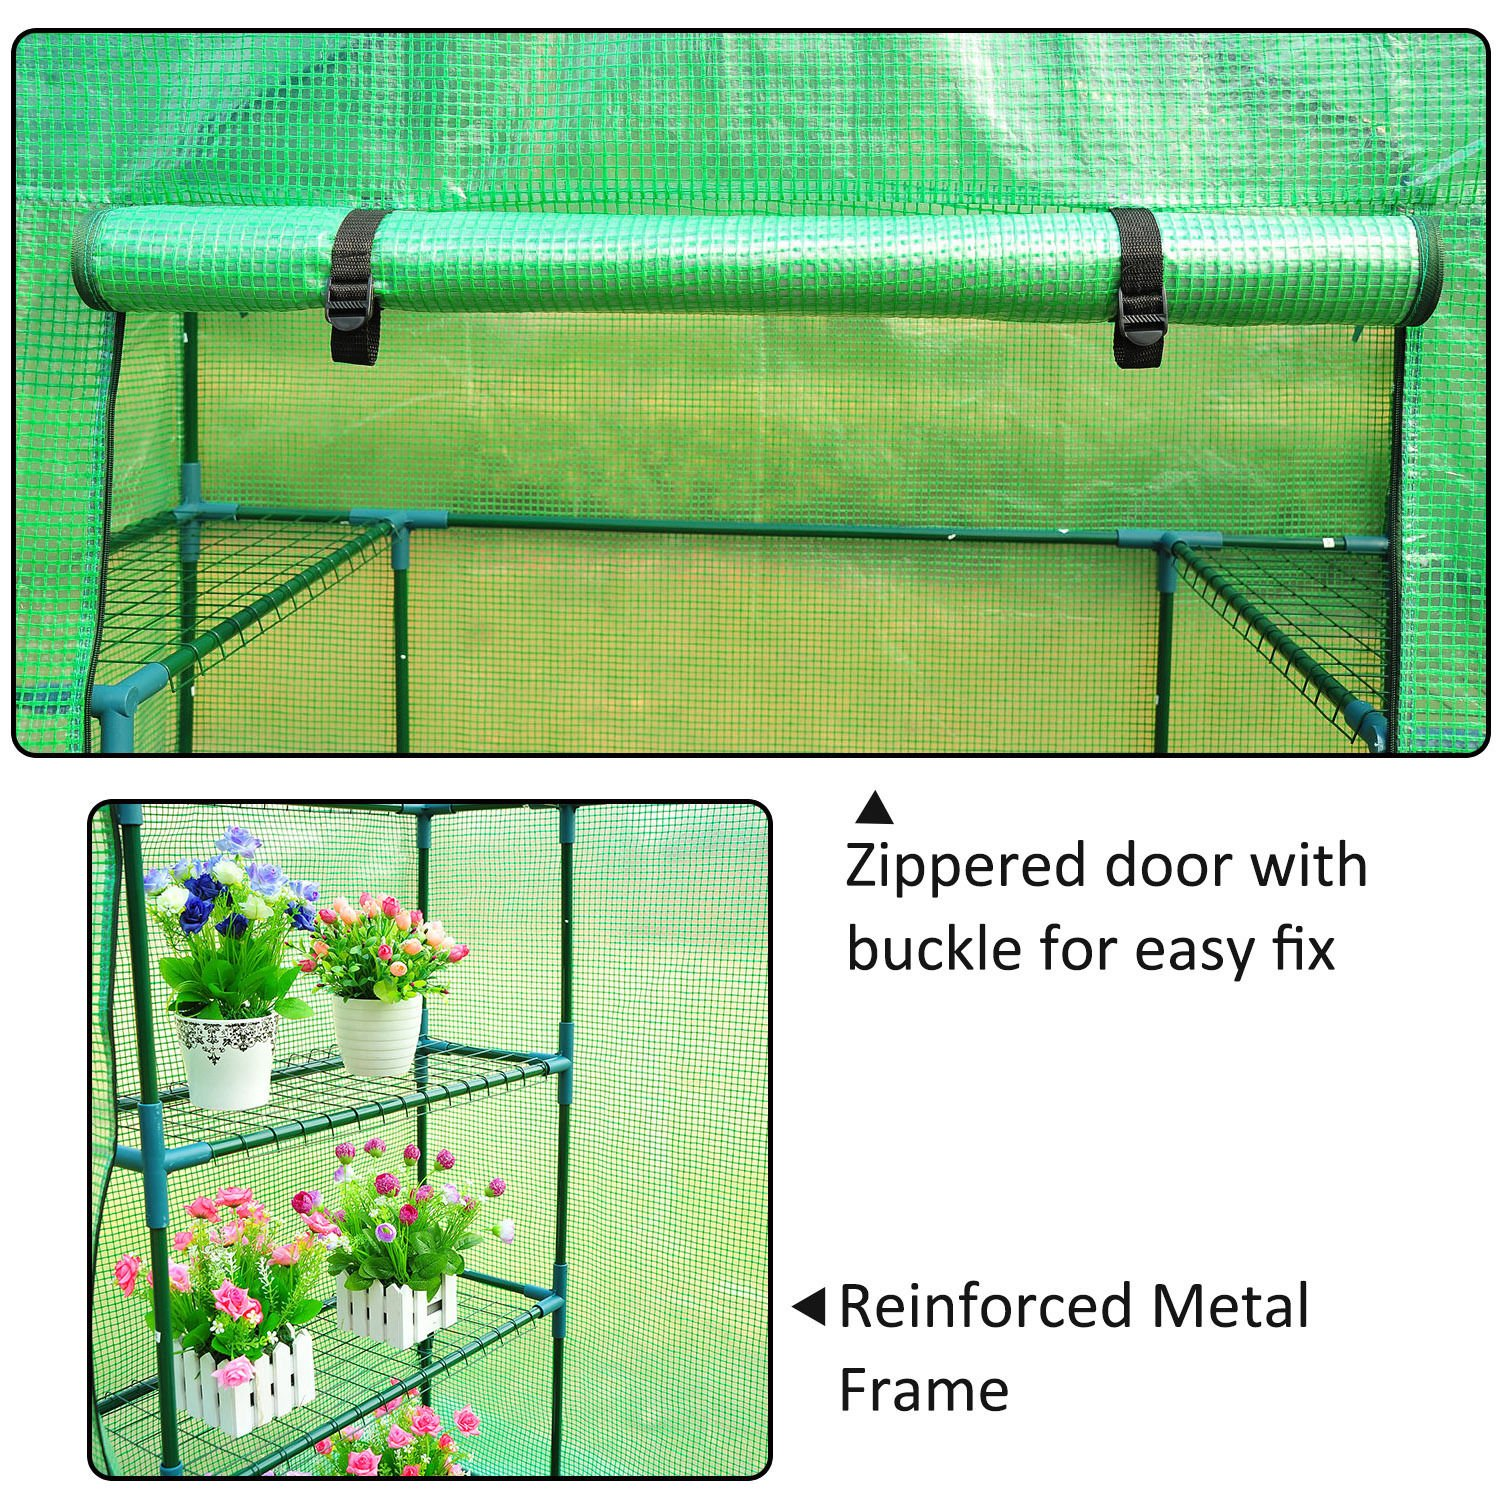 Outsunny 8' x 6' x 7' Outdoor Portable Walk-in Greenhouse by Outsunny (Image #3)